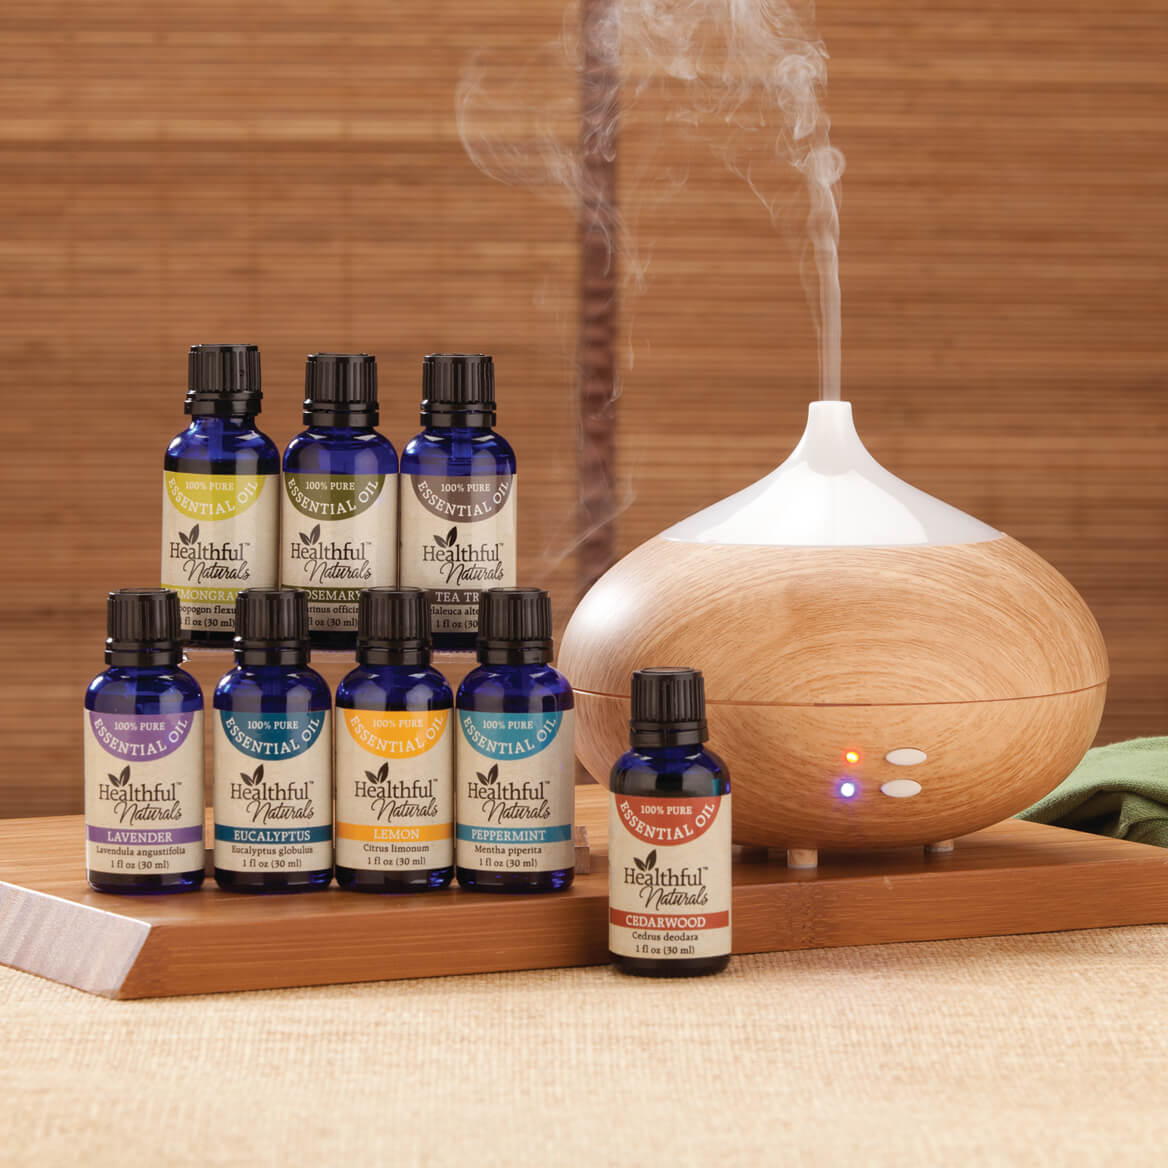 Healthful™ Naturals Deluxe Essential Oil Kit & 280 ml Diffuser-356537